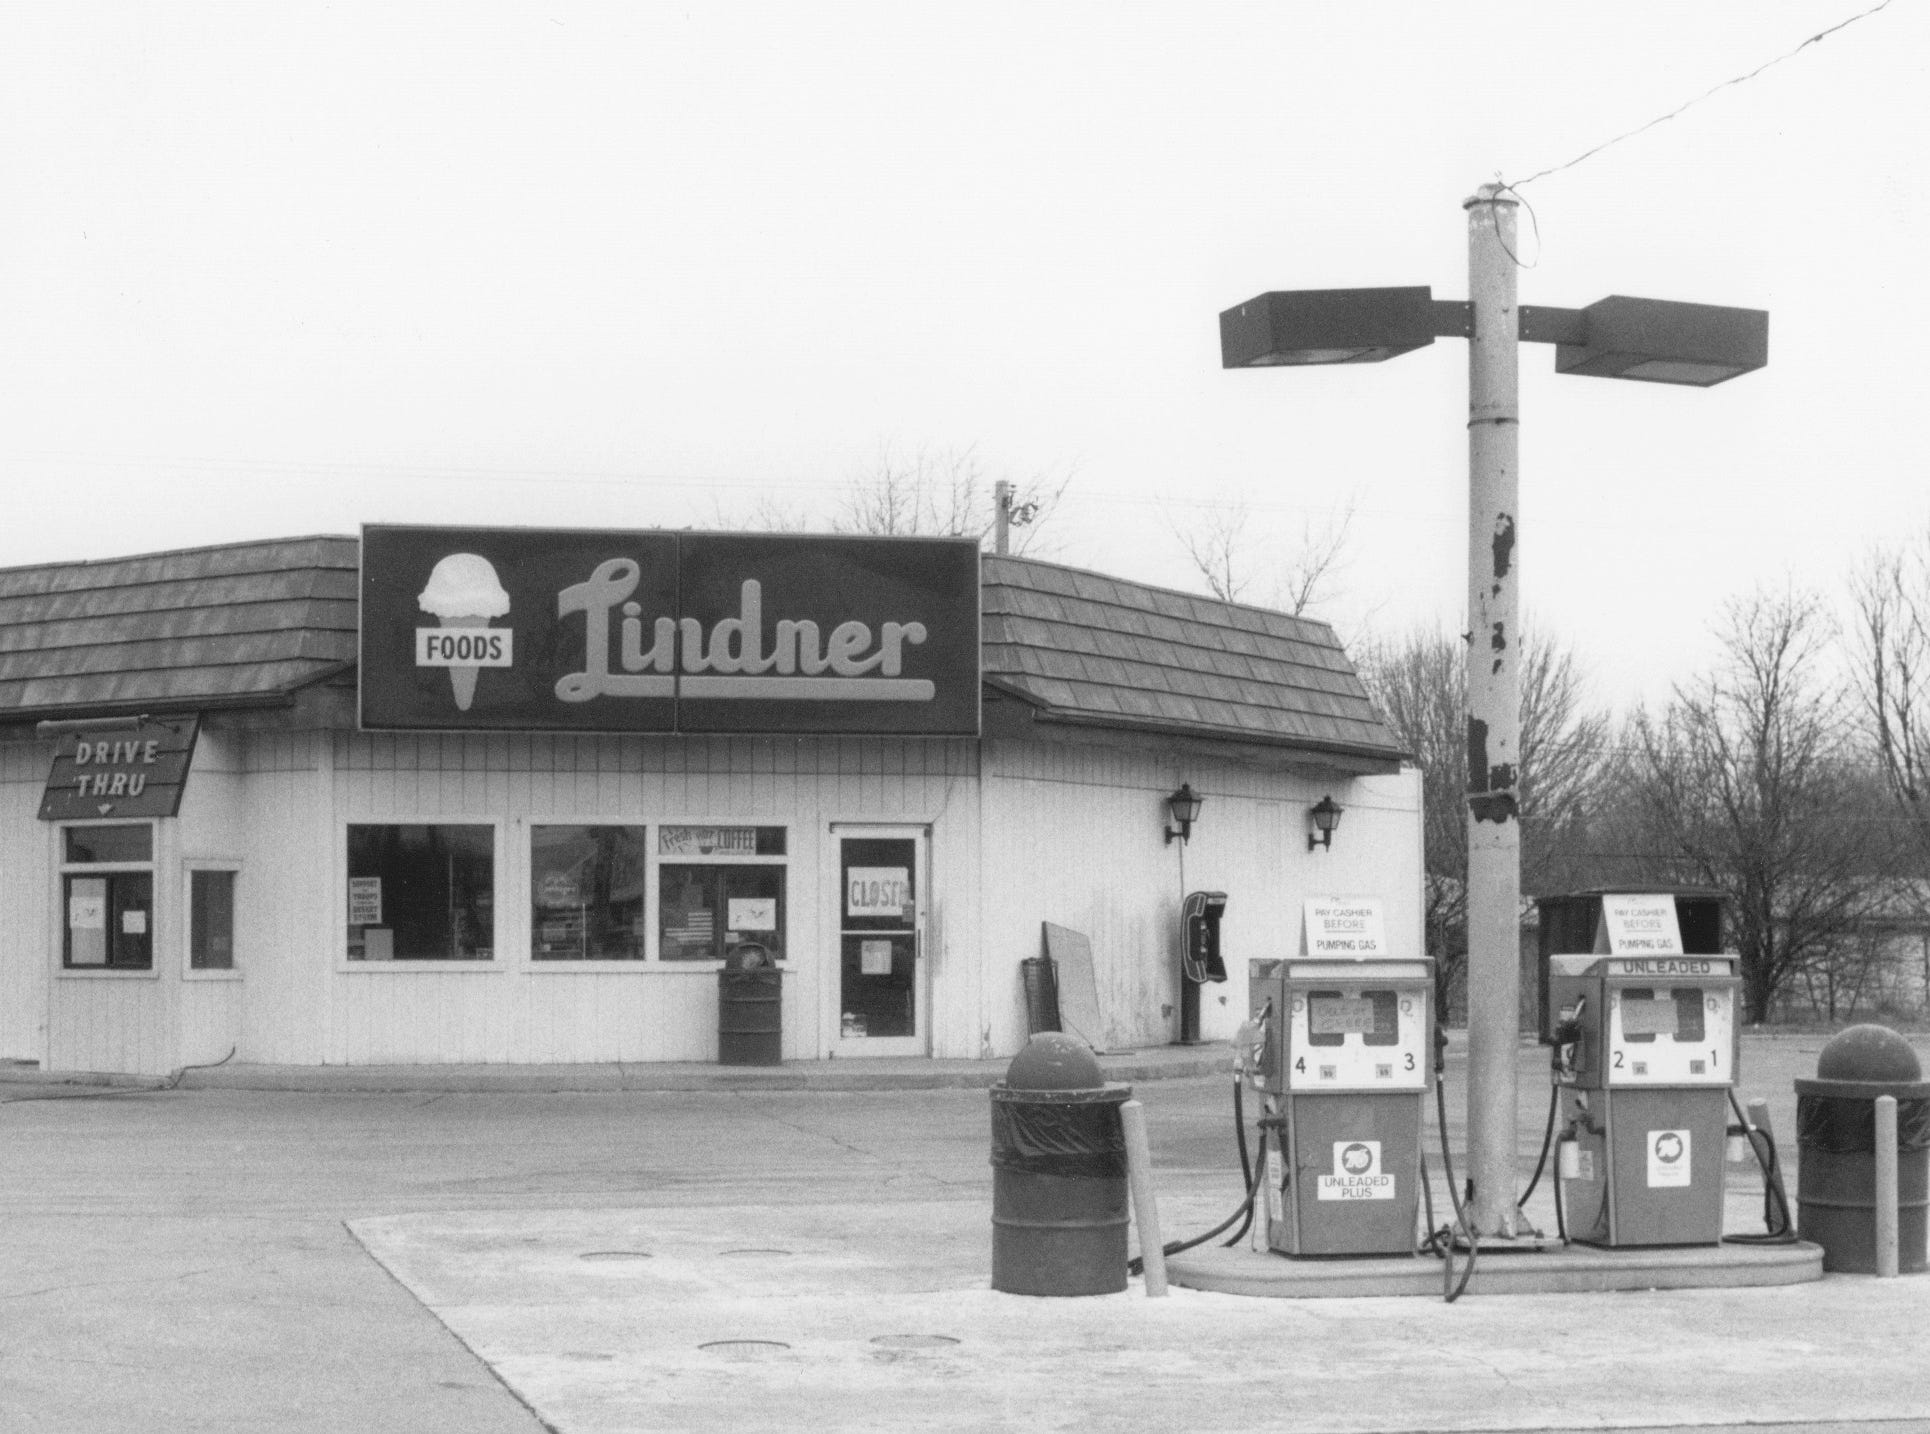 The last of the Lindner stores - this one at 3002 N. Franklin Rd. closed in 1992. Lindner Bros. ice cream business started in 1930. In 1949 the first Lindner's store opened. By 1968 there were 27 locations.